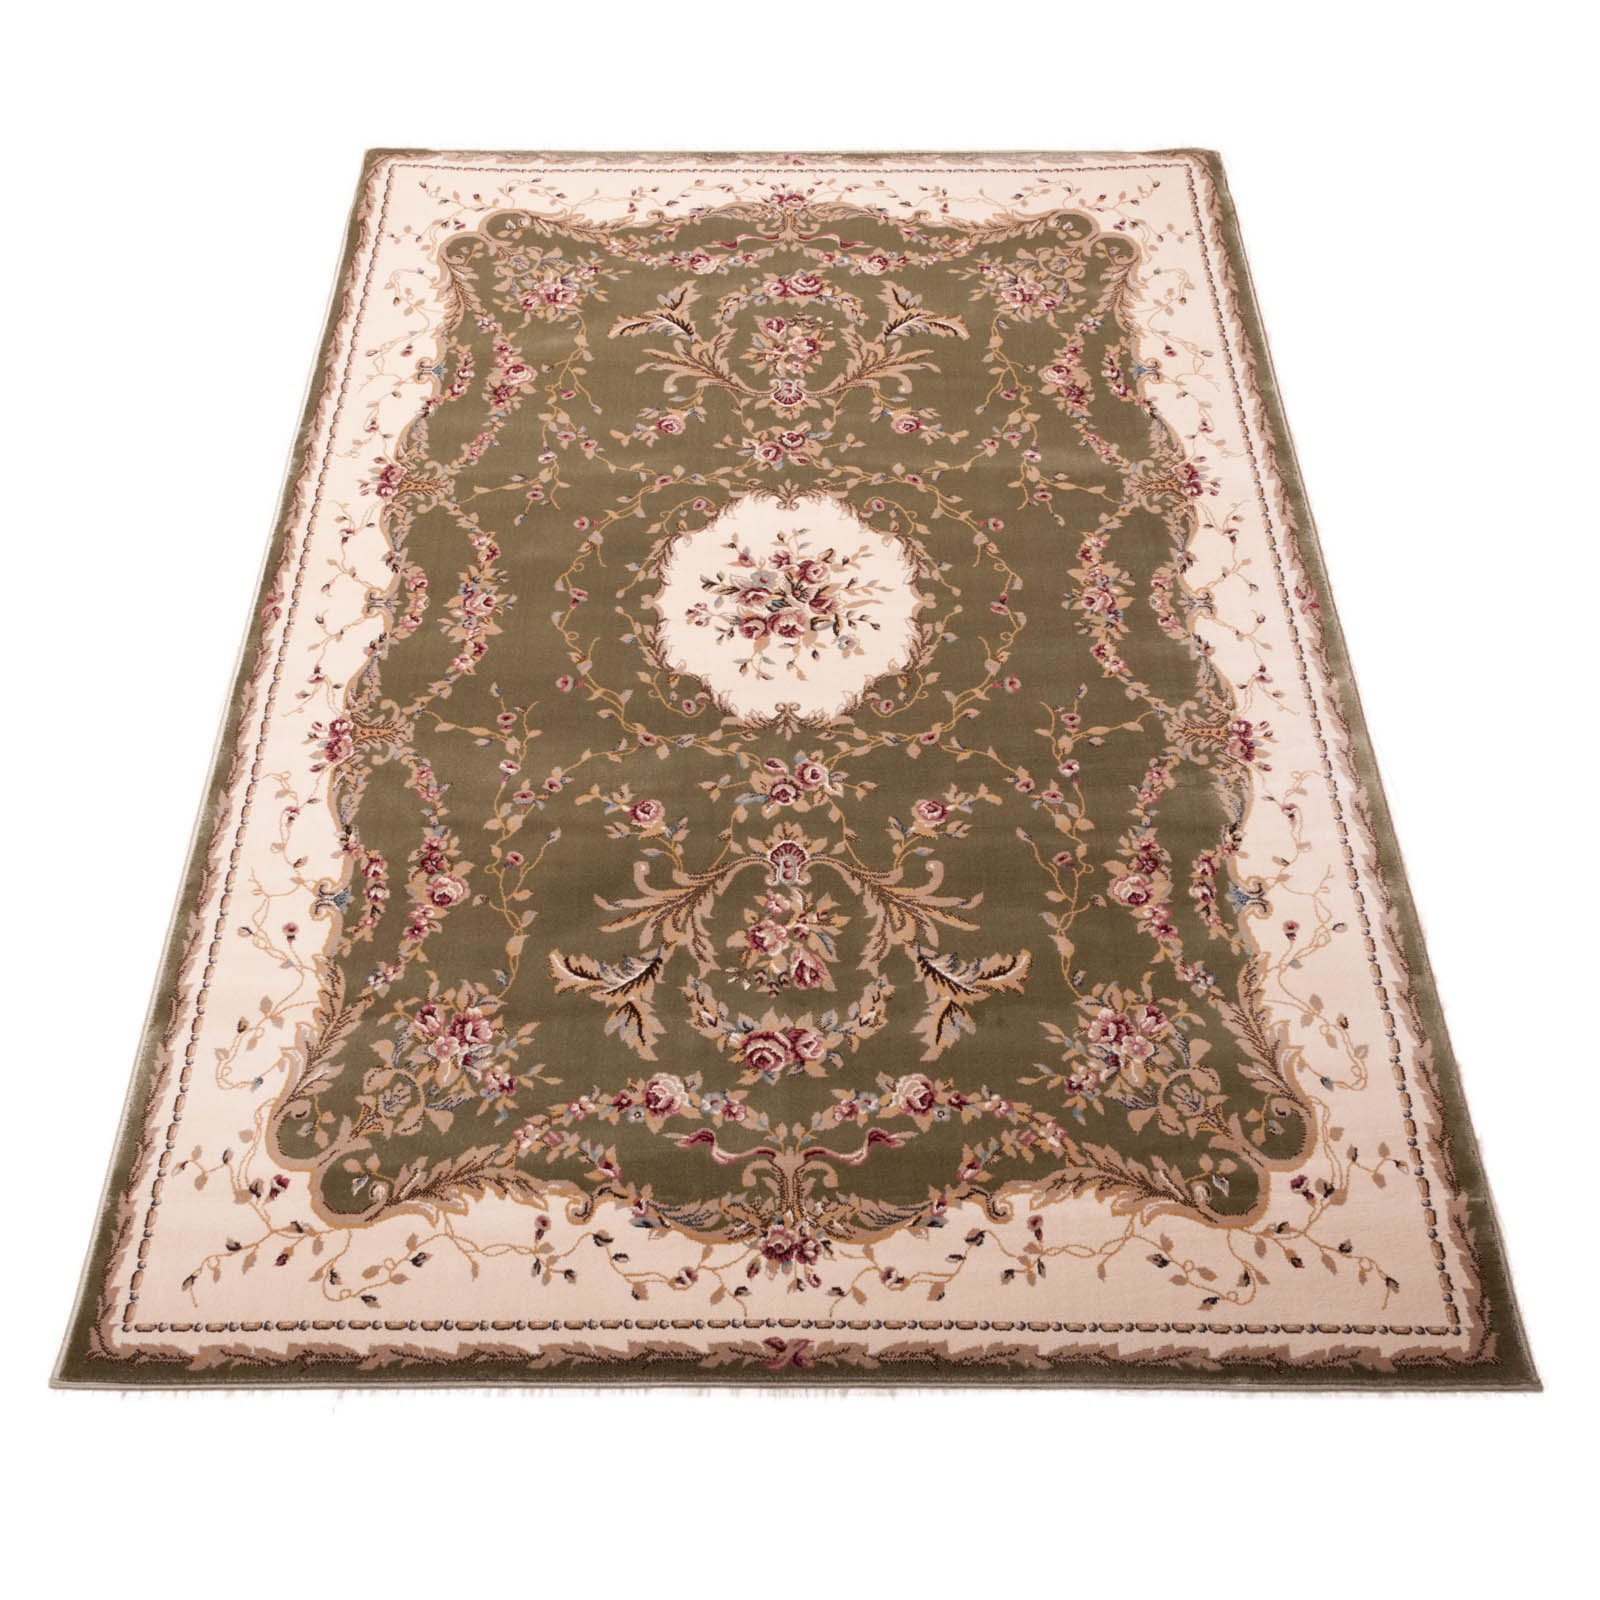 Bordeaux Rugs BOR01 in Sage